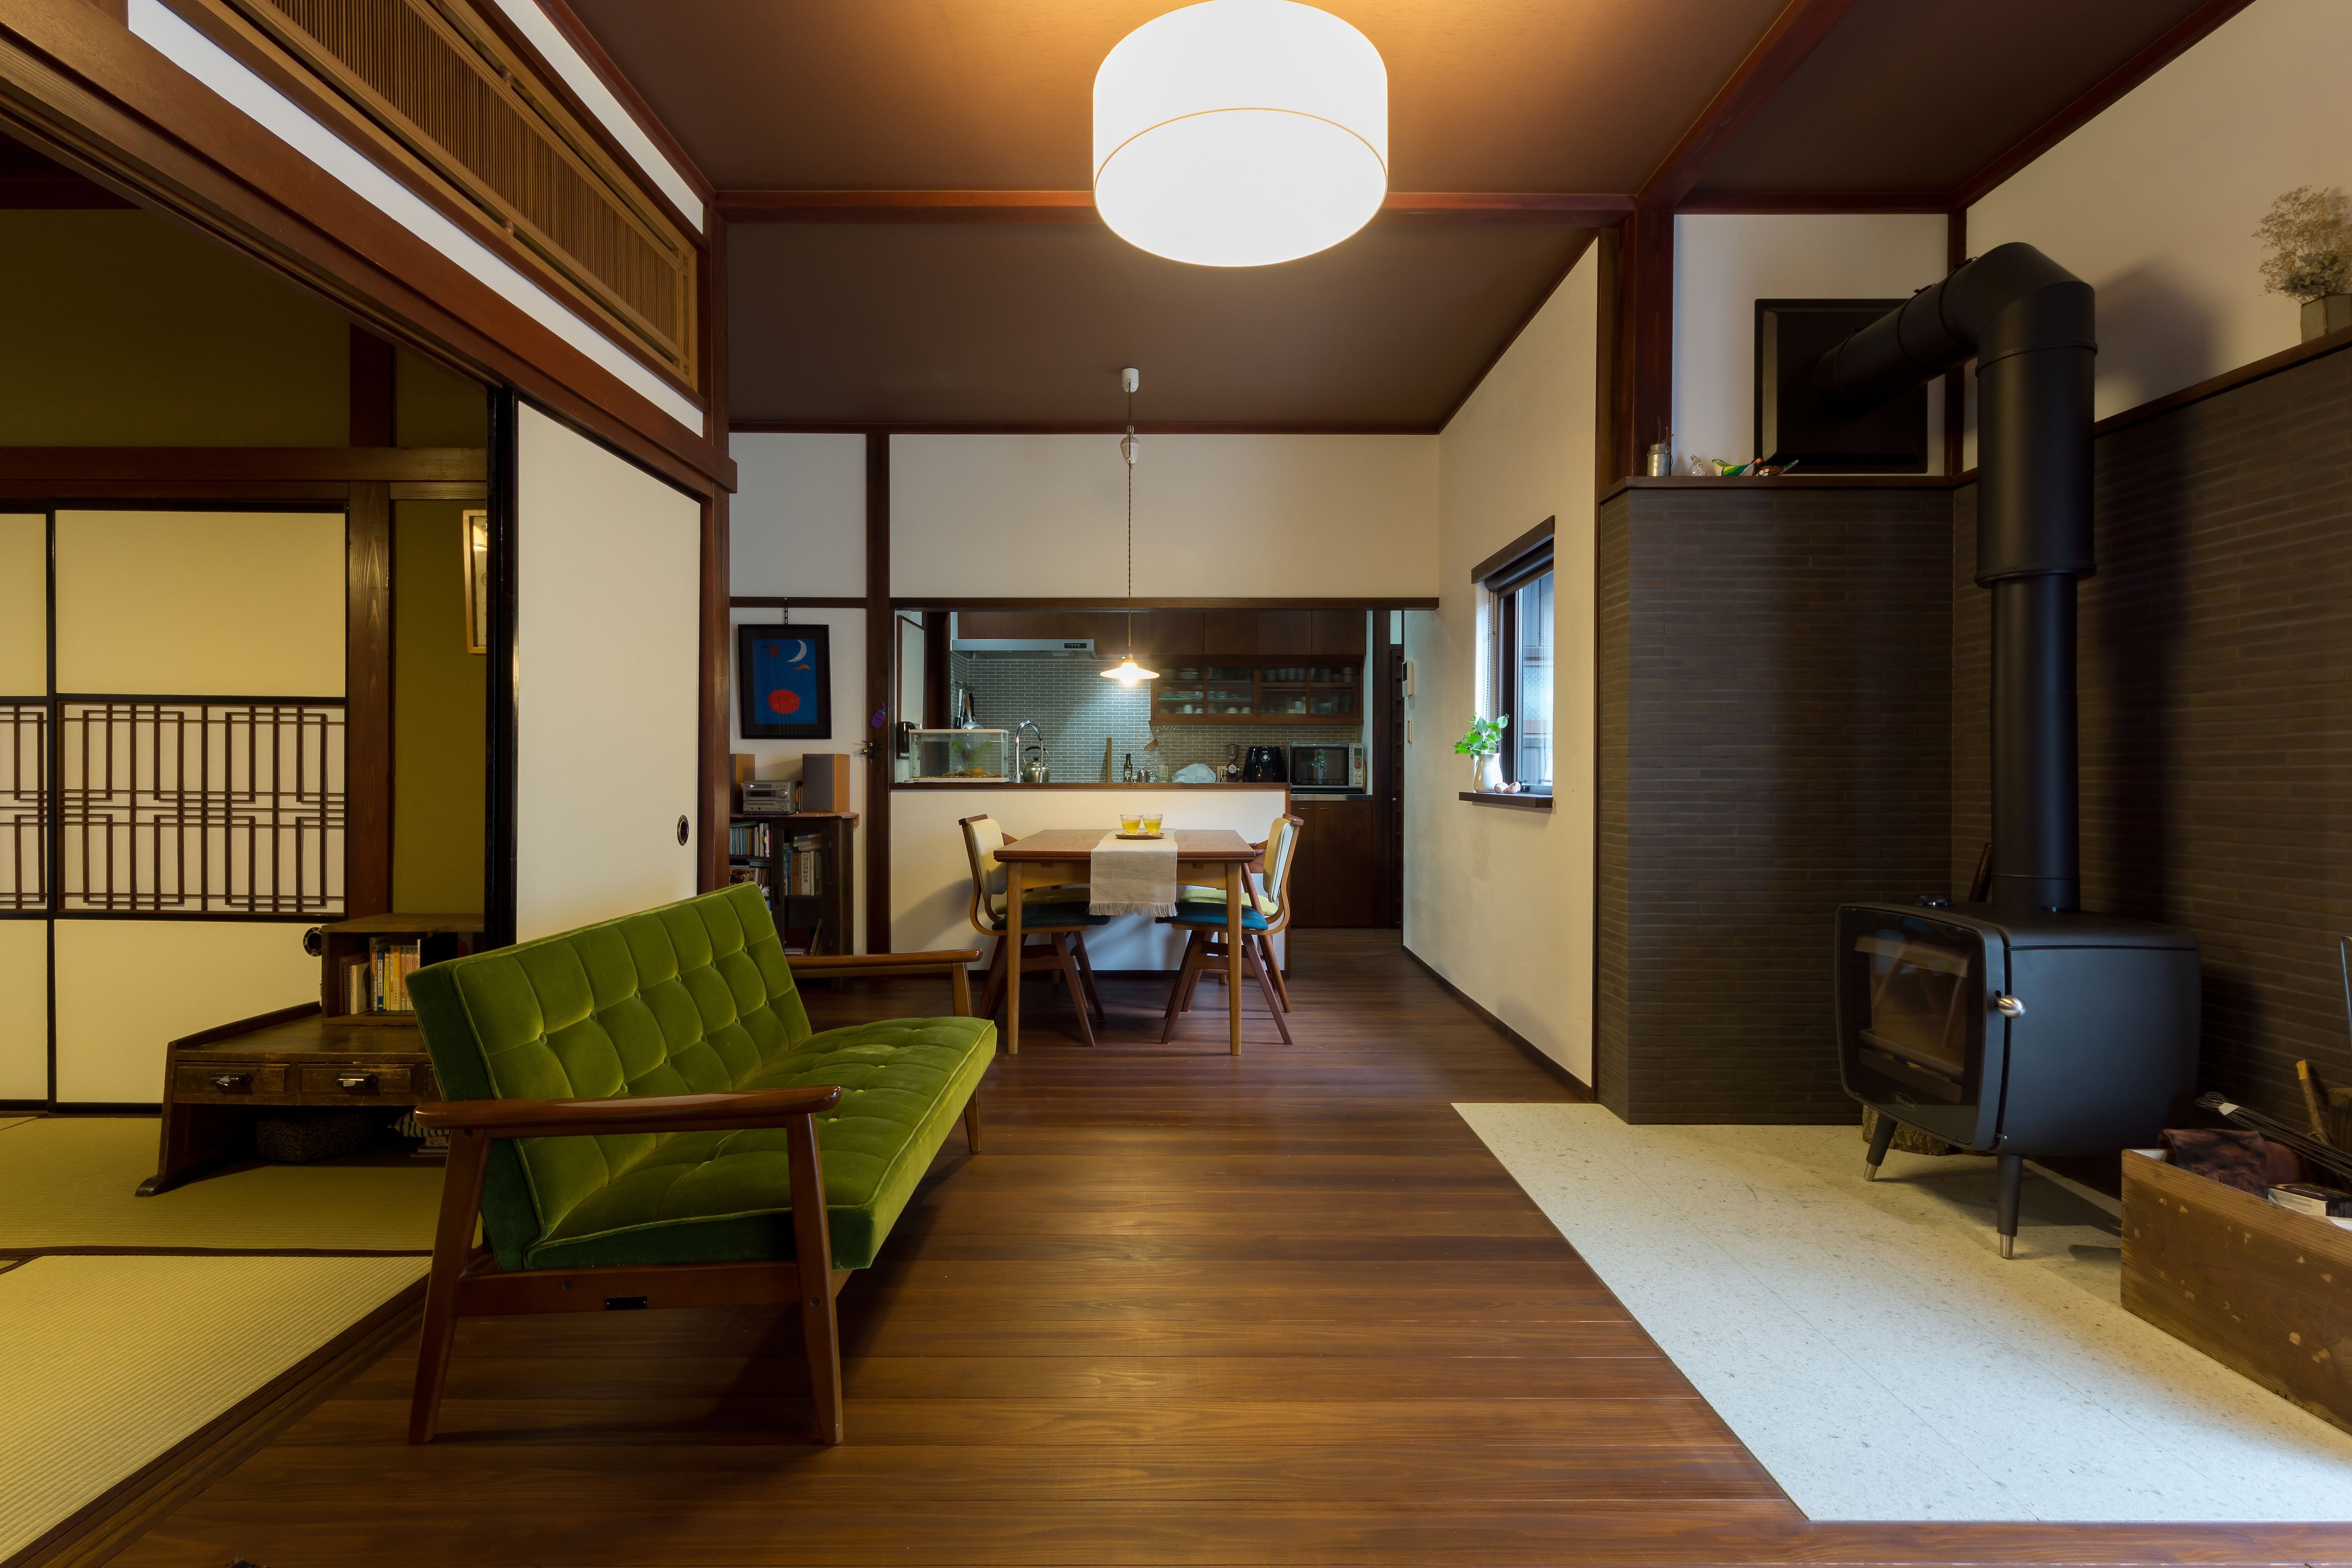 Traditional Japanese Living Room Home Sweet Home Preserving the Traditional Kanazawa